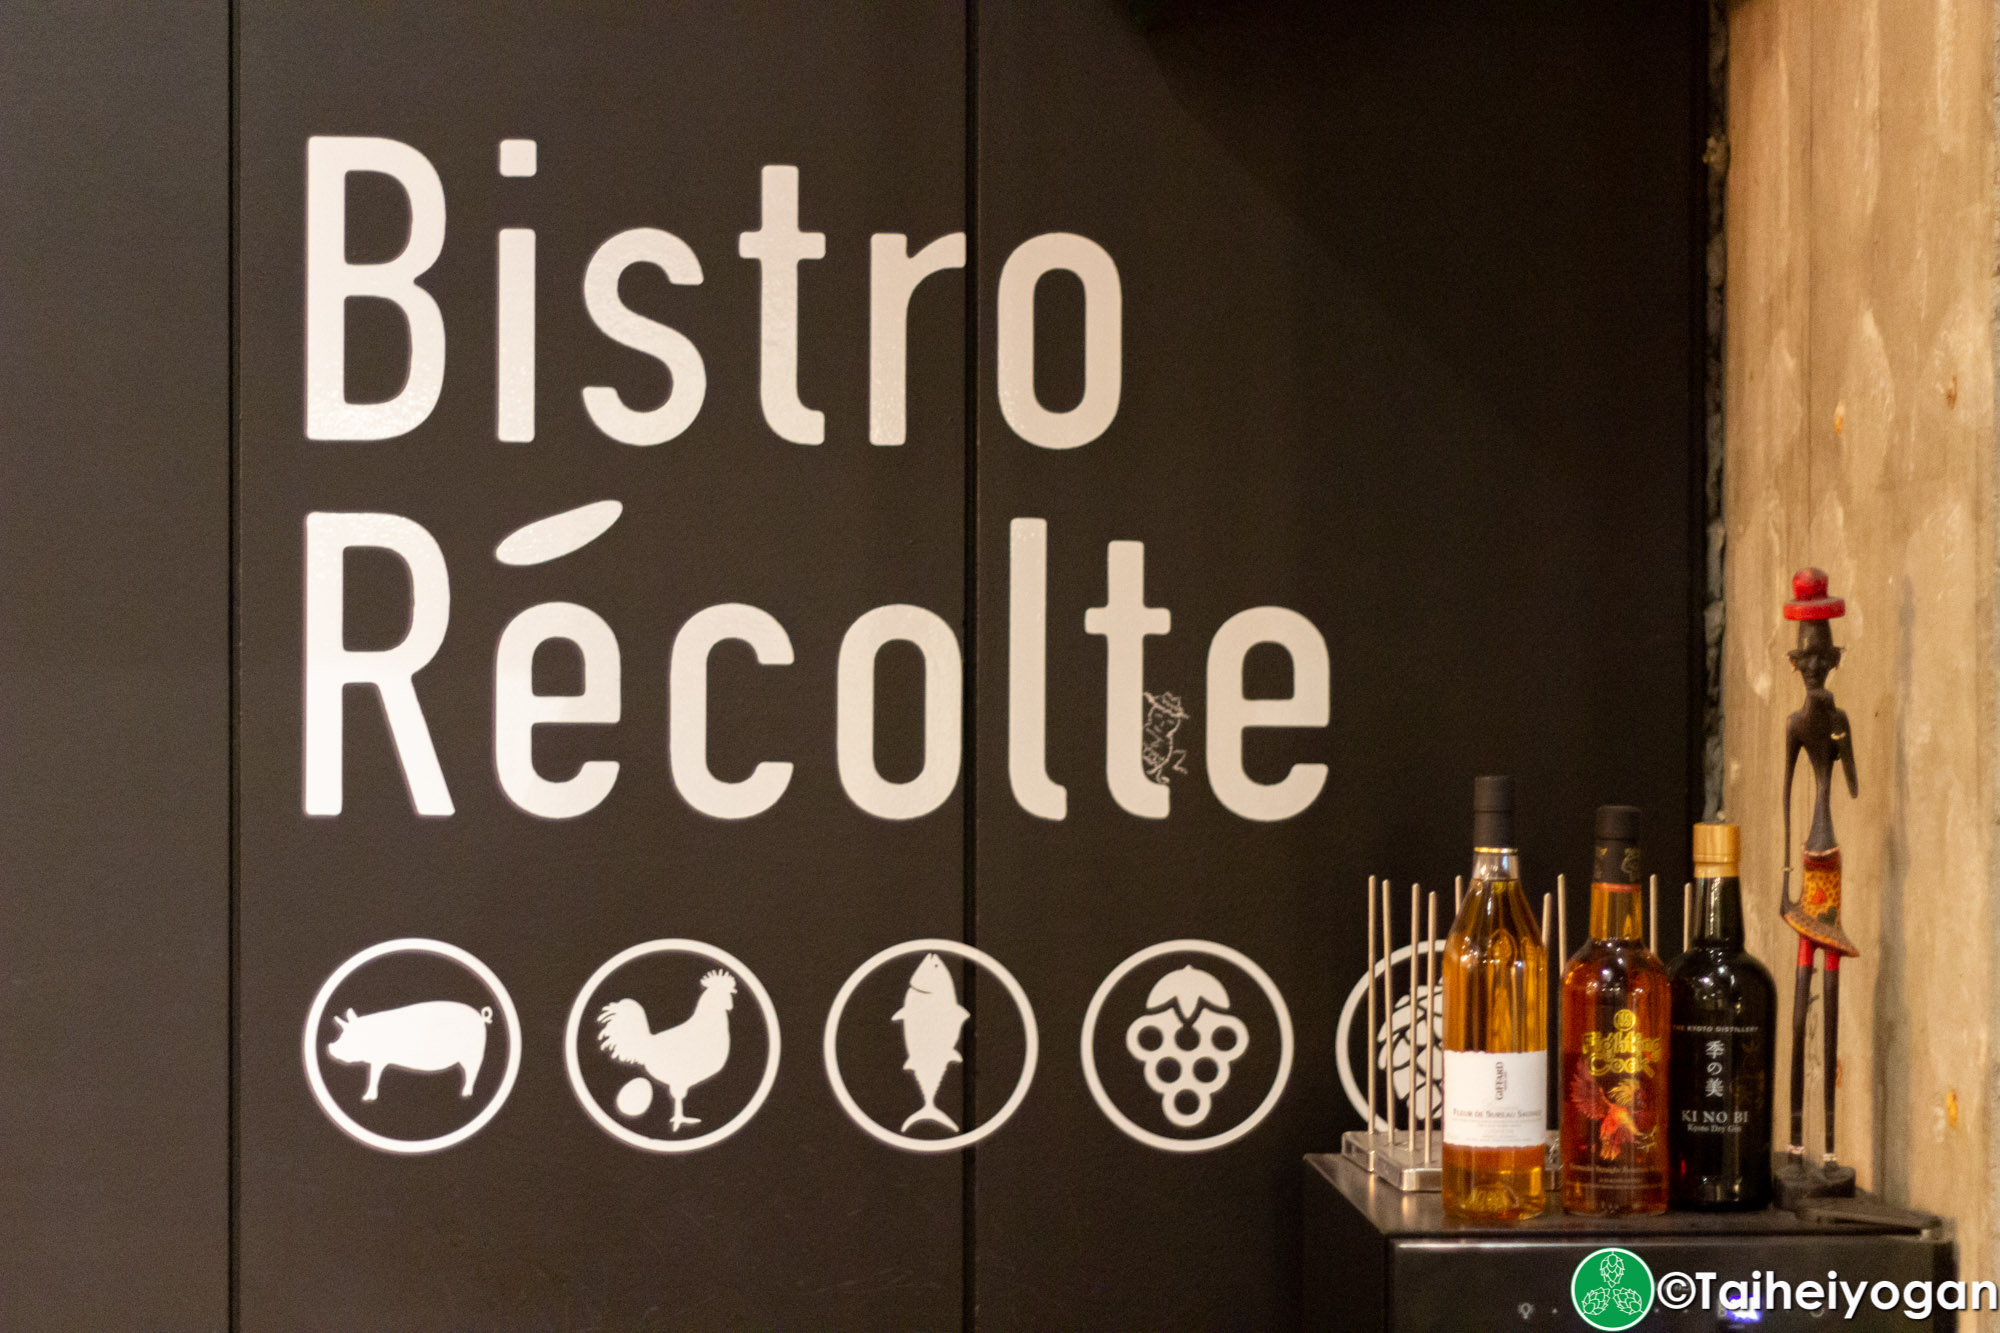 Bistro Recolte - Interior - Sign